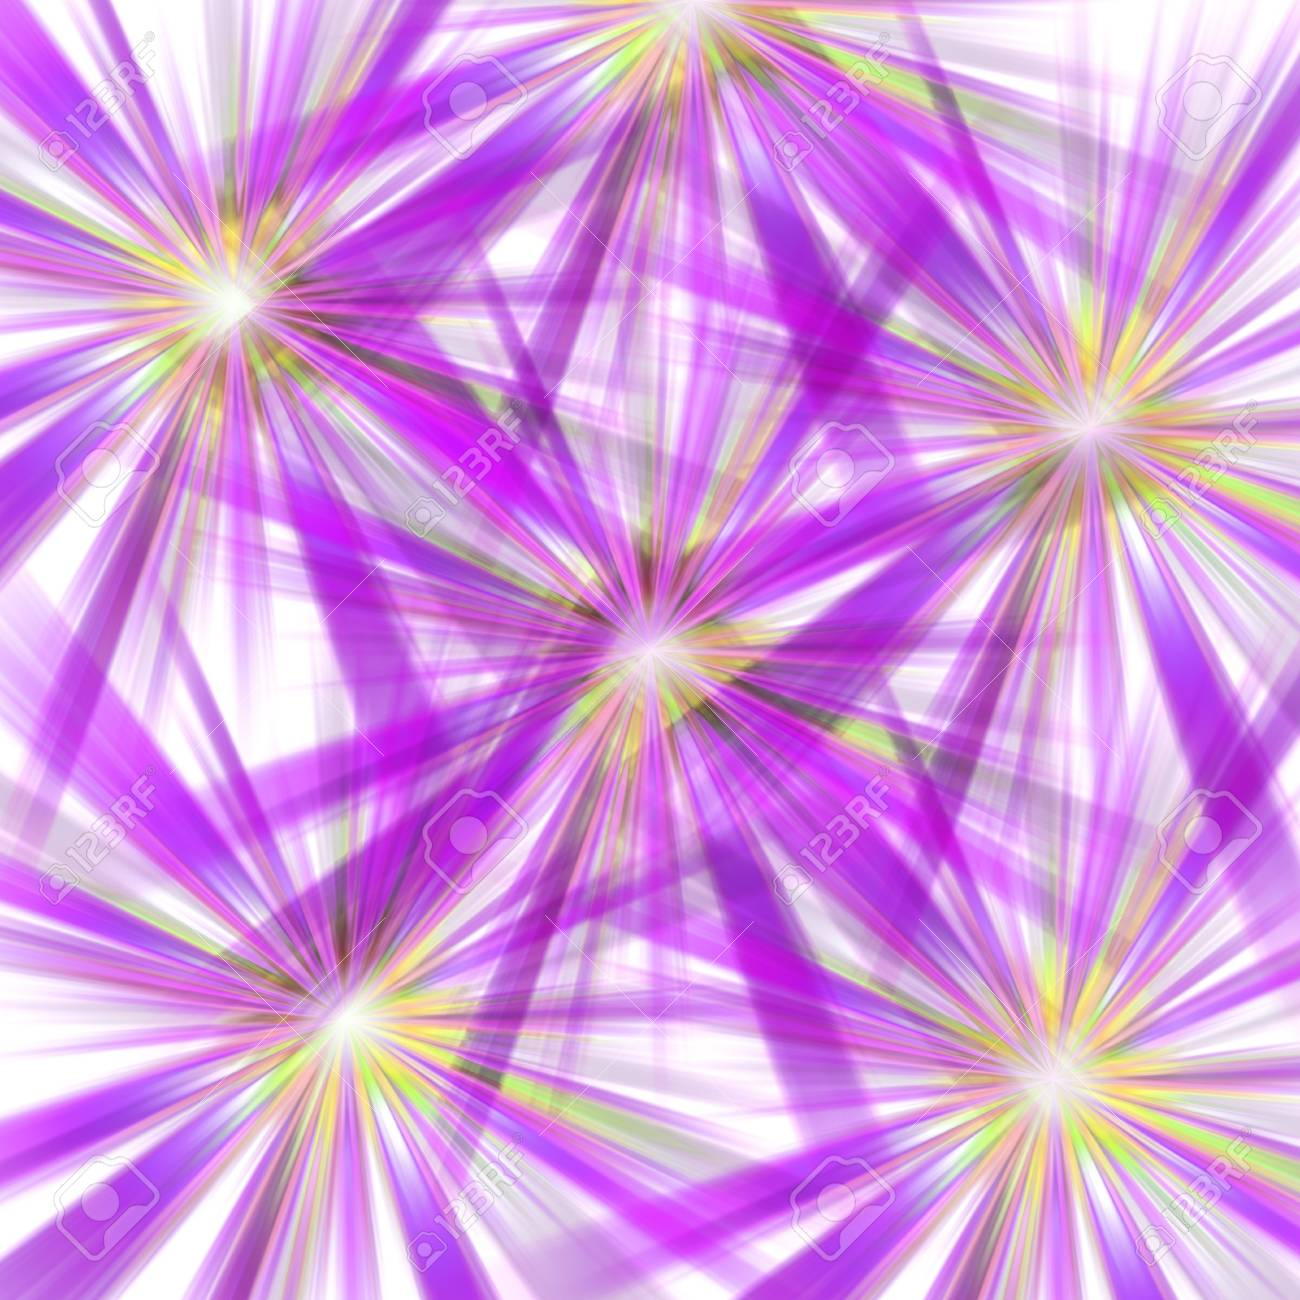 An abstract burst illustration. Very colorful - works great as a background. Stock Photo - 3146881